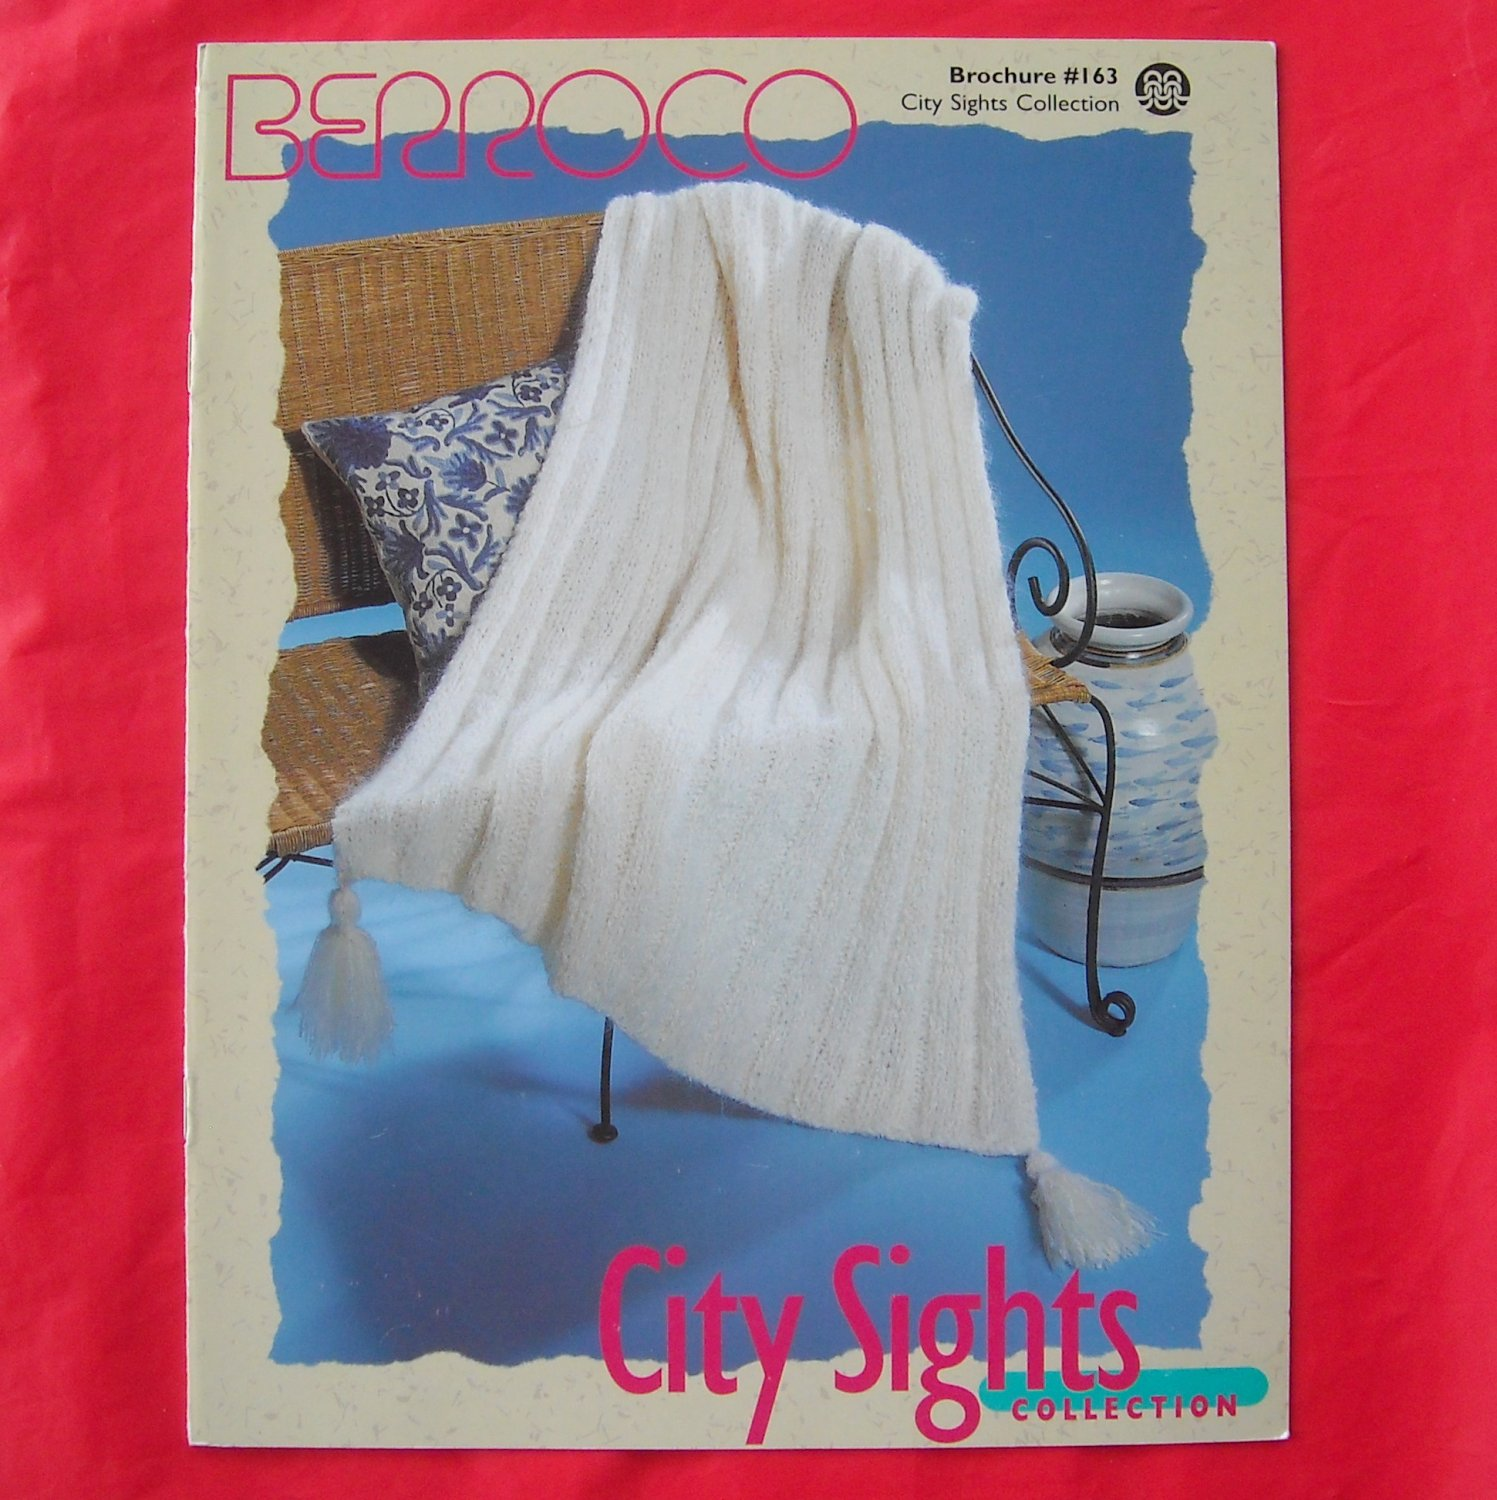 Berroco City Sights Collection 4 Knitted Throw patterns booklet # 163